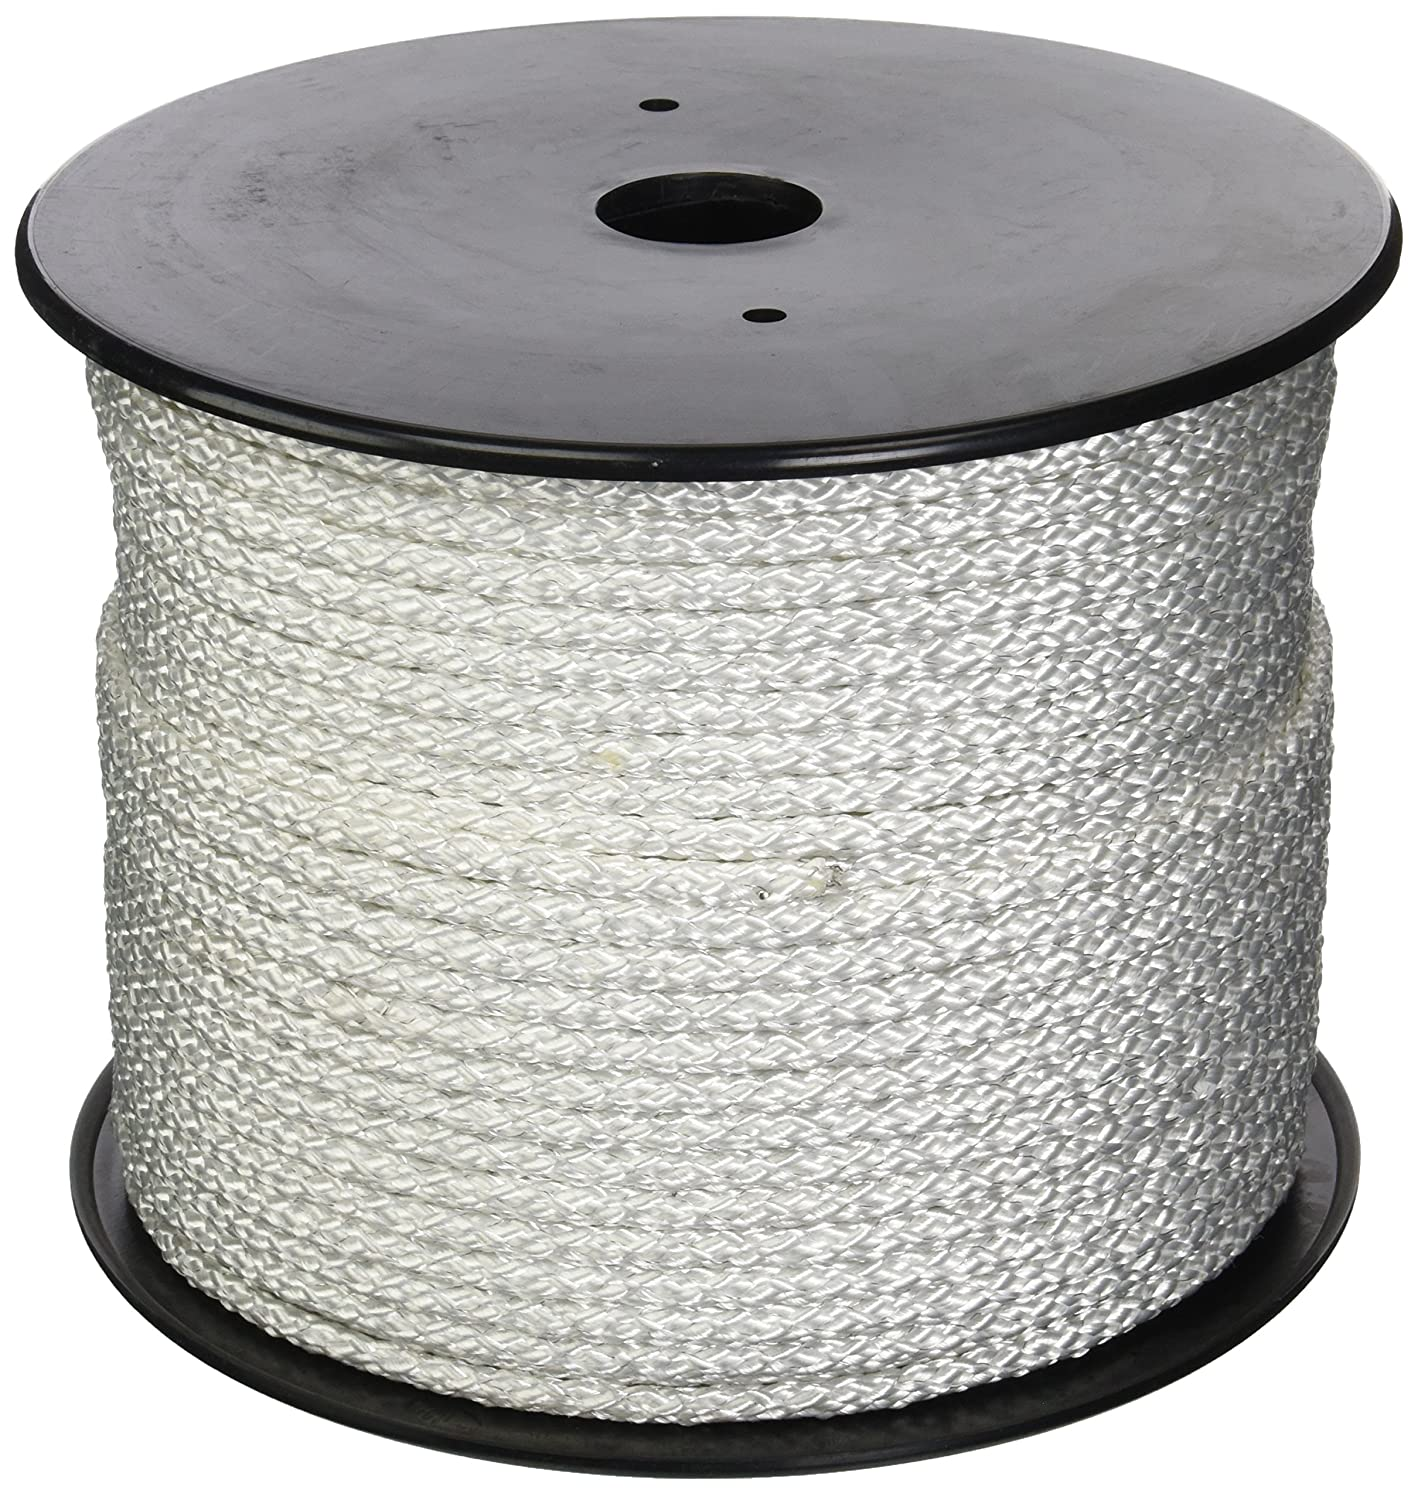 Amazon.com: DARE PRODUCTS 3094 Equip Rope, 6mm: Home Improvement